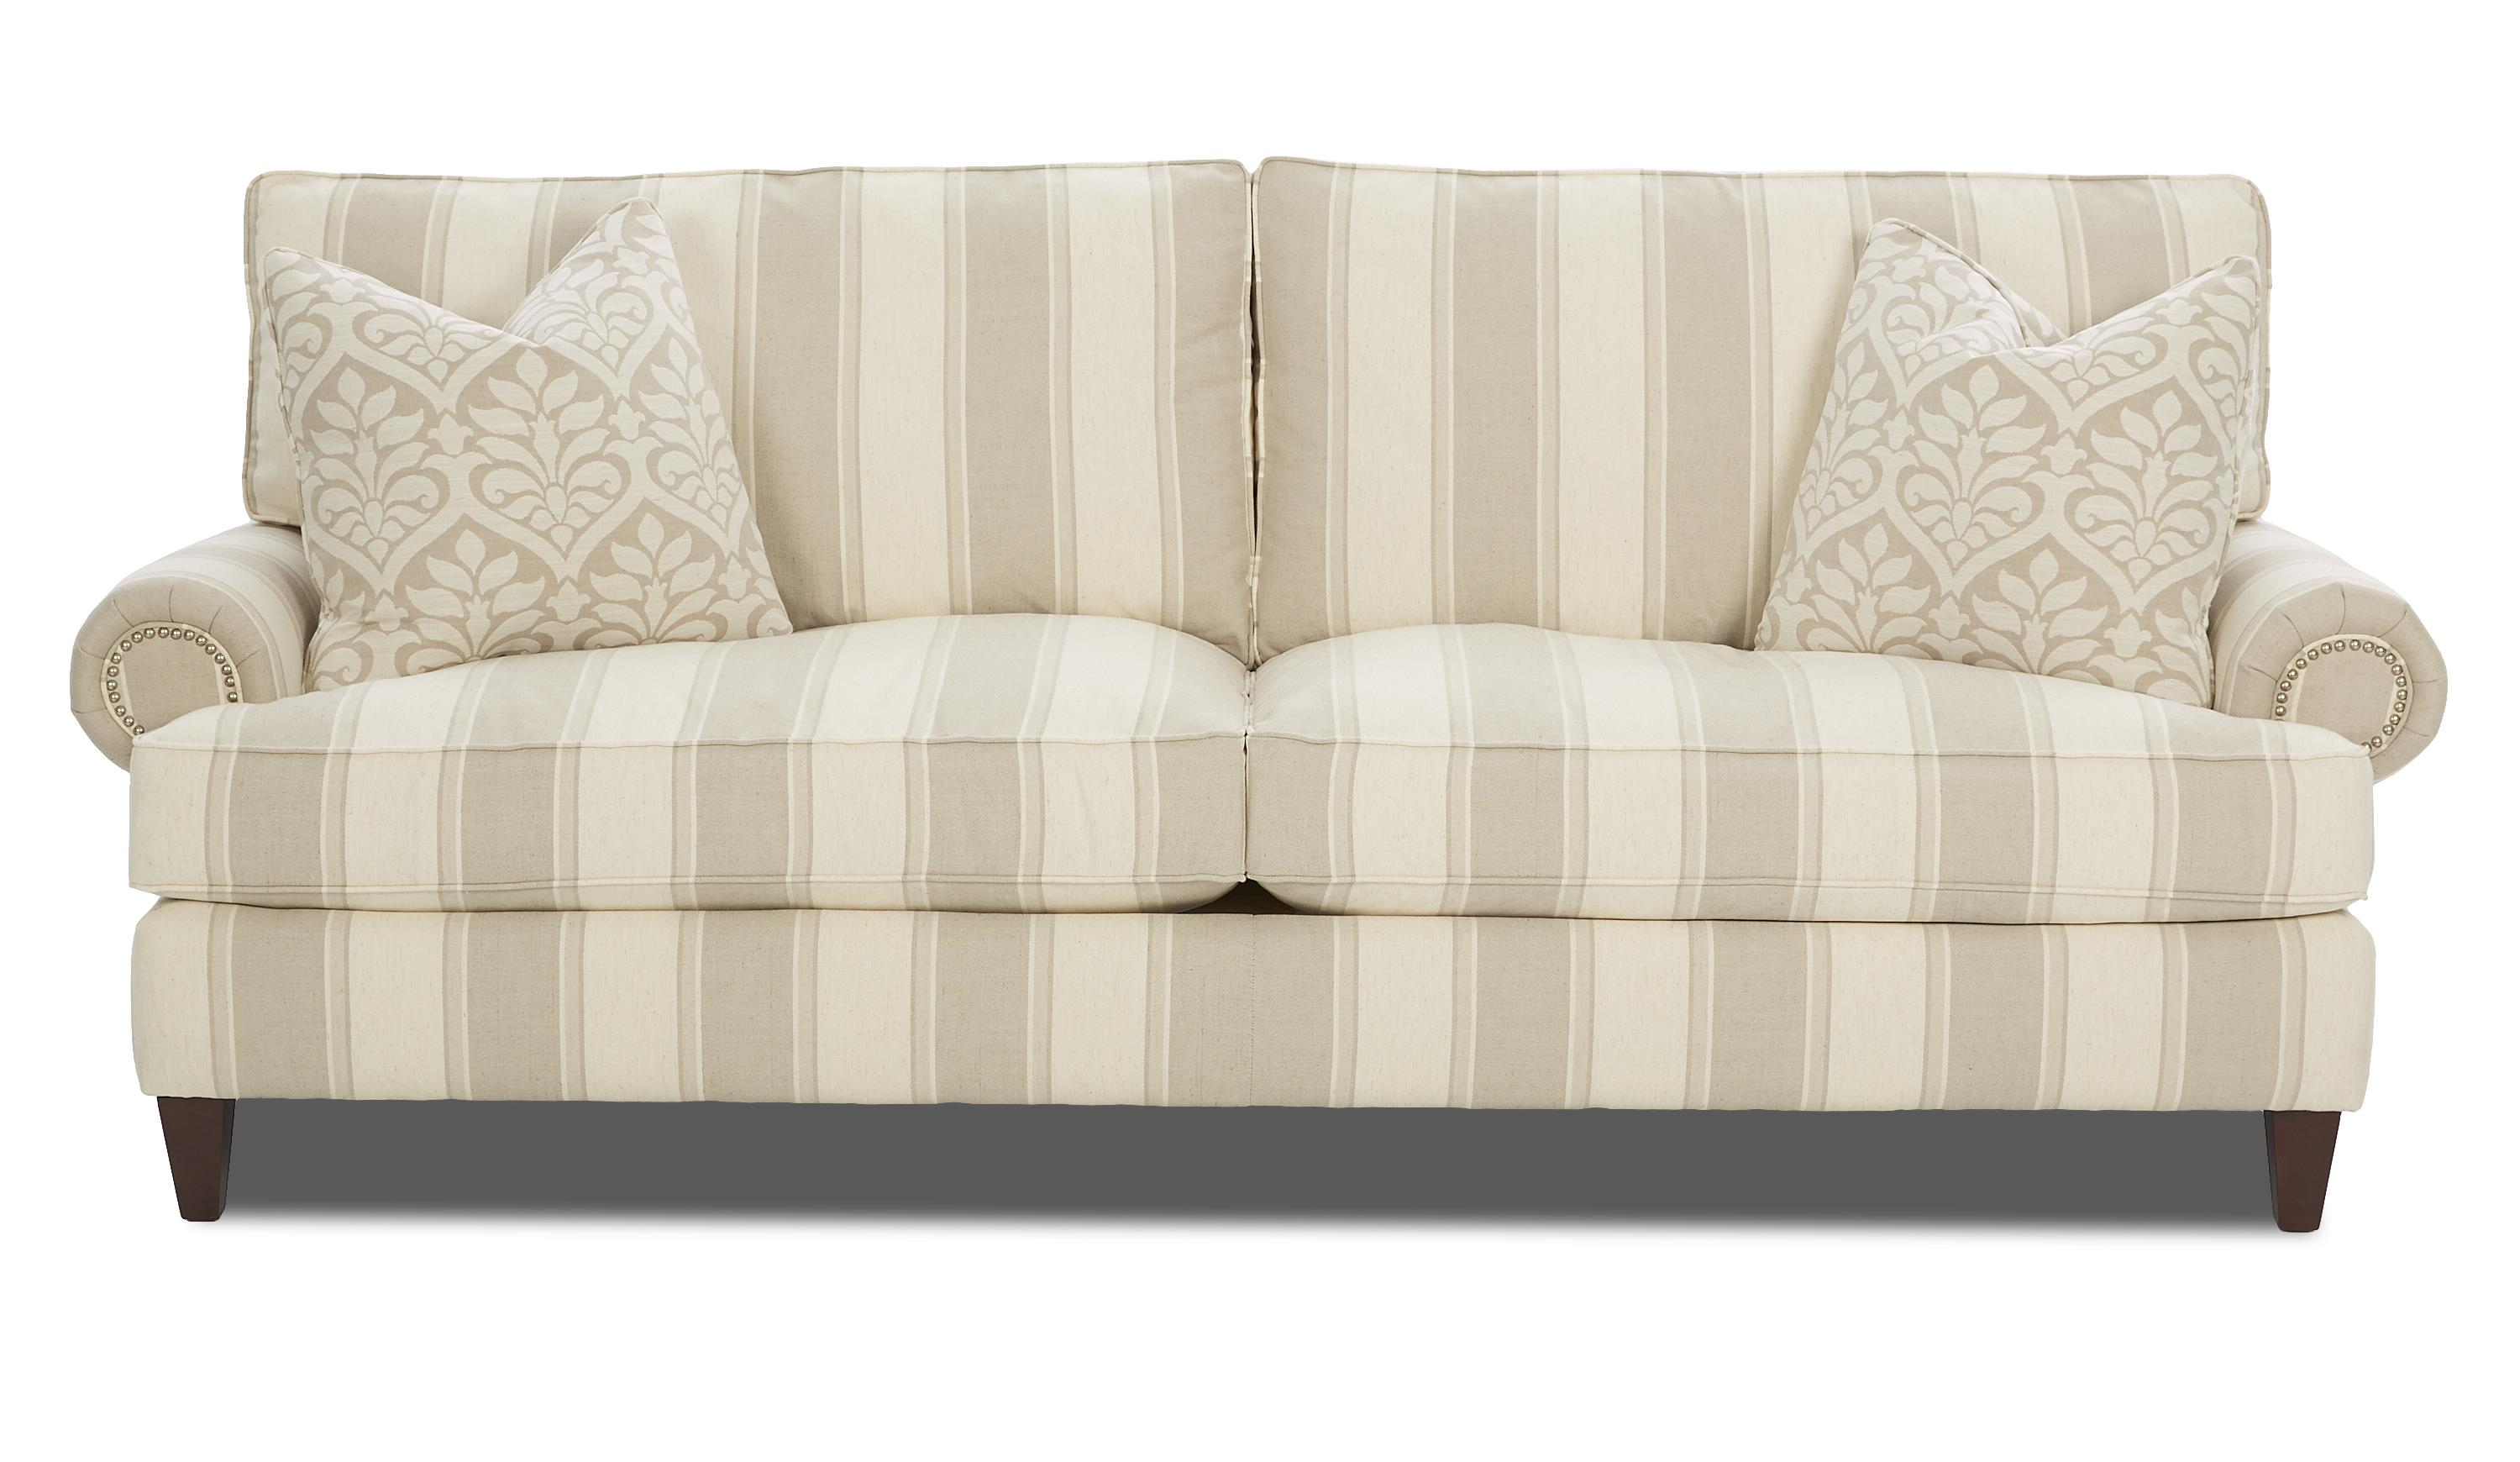 Klaussner Flannery Traditional Stationary Sofa - Item Number: D42710 S-ConnorLinen